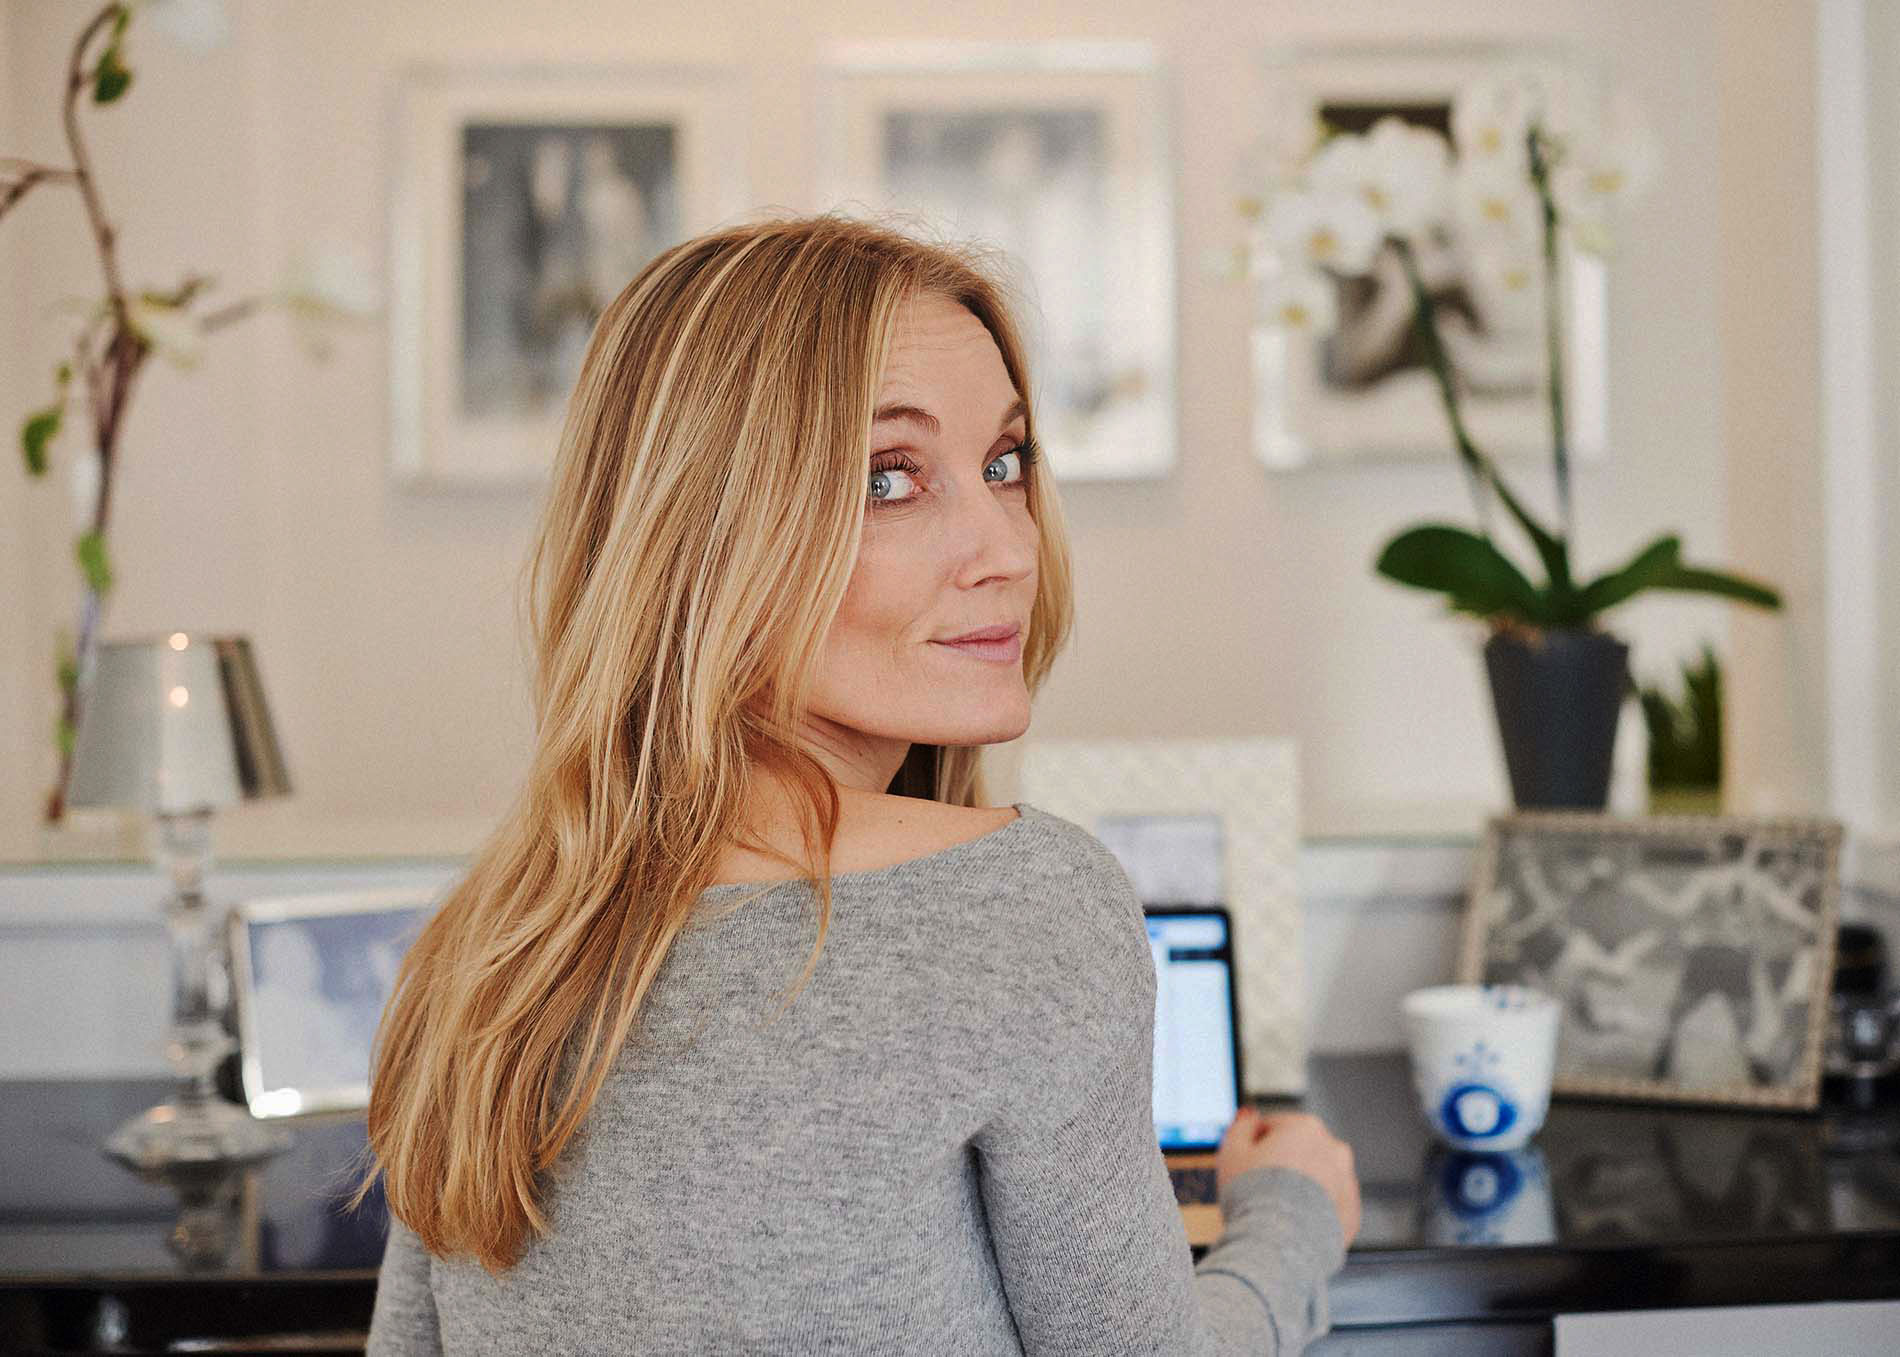 Malene Rydahl is a former executive in corporate communication and currently a writer, speaker and executive coach specializing in happiness, well-being and management.